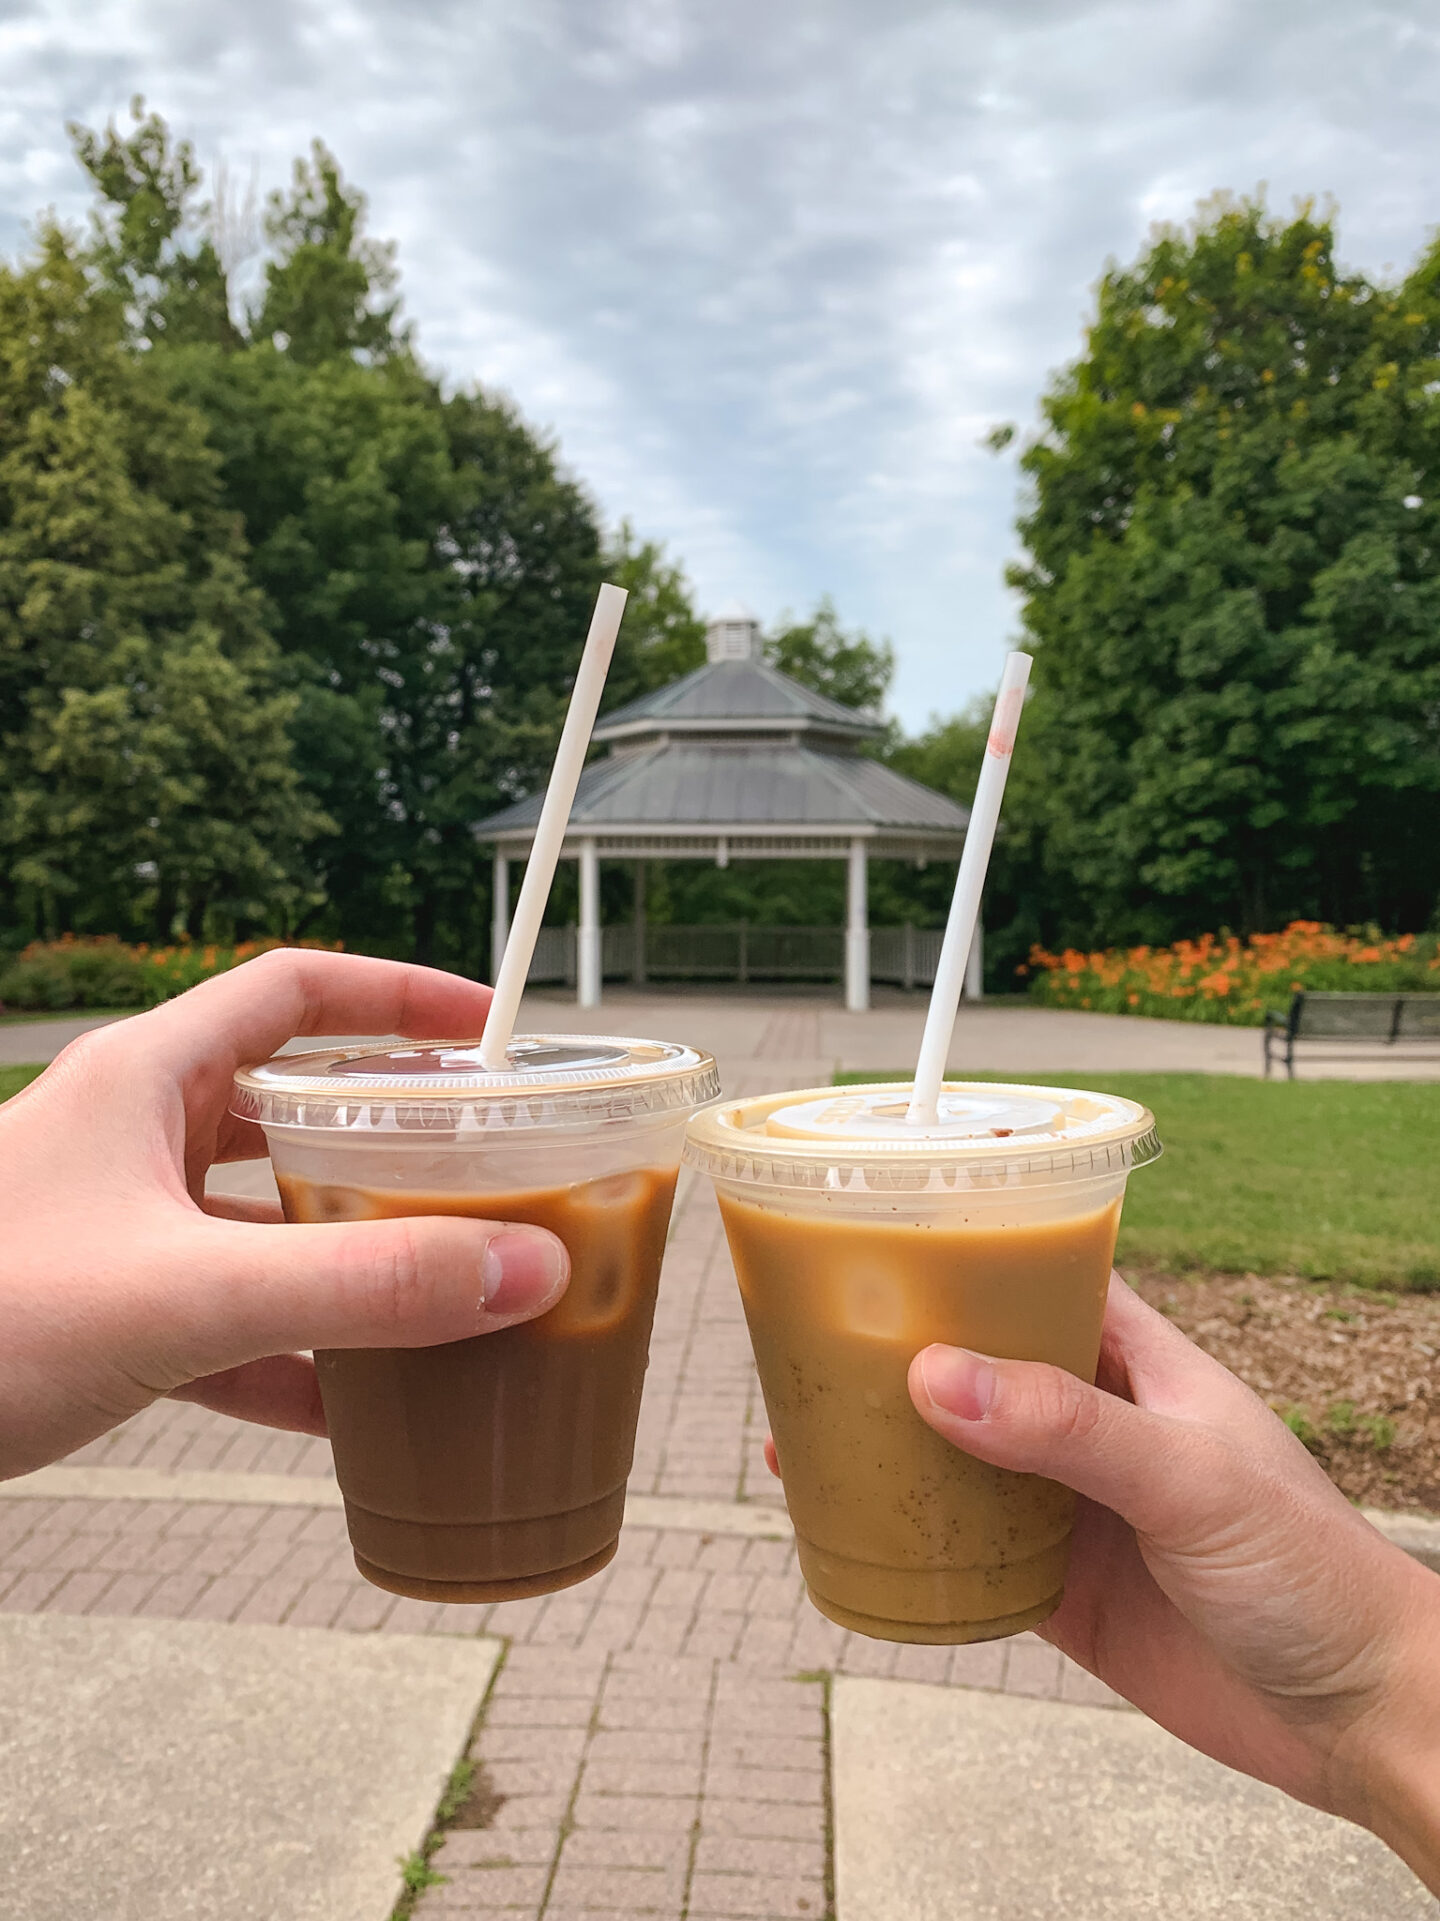 Roam Coffee at Rotary Park in Bowmanville, Ontario